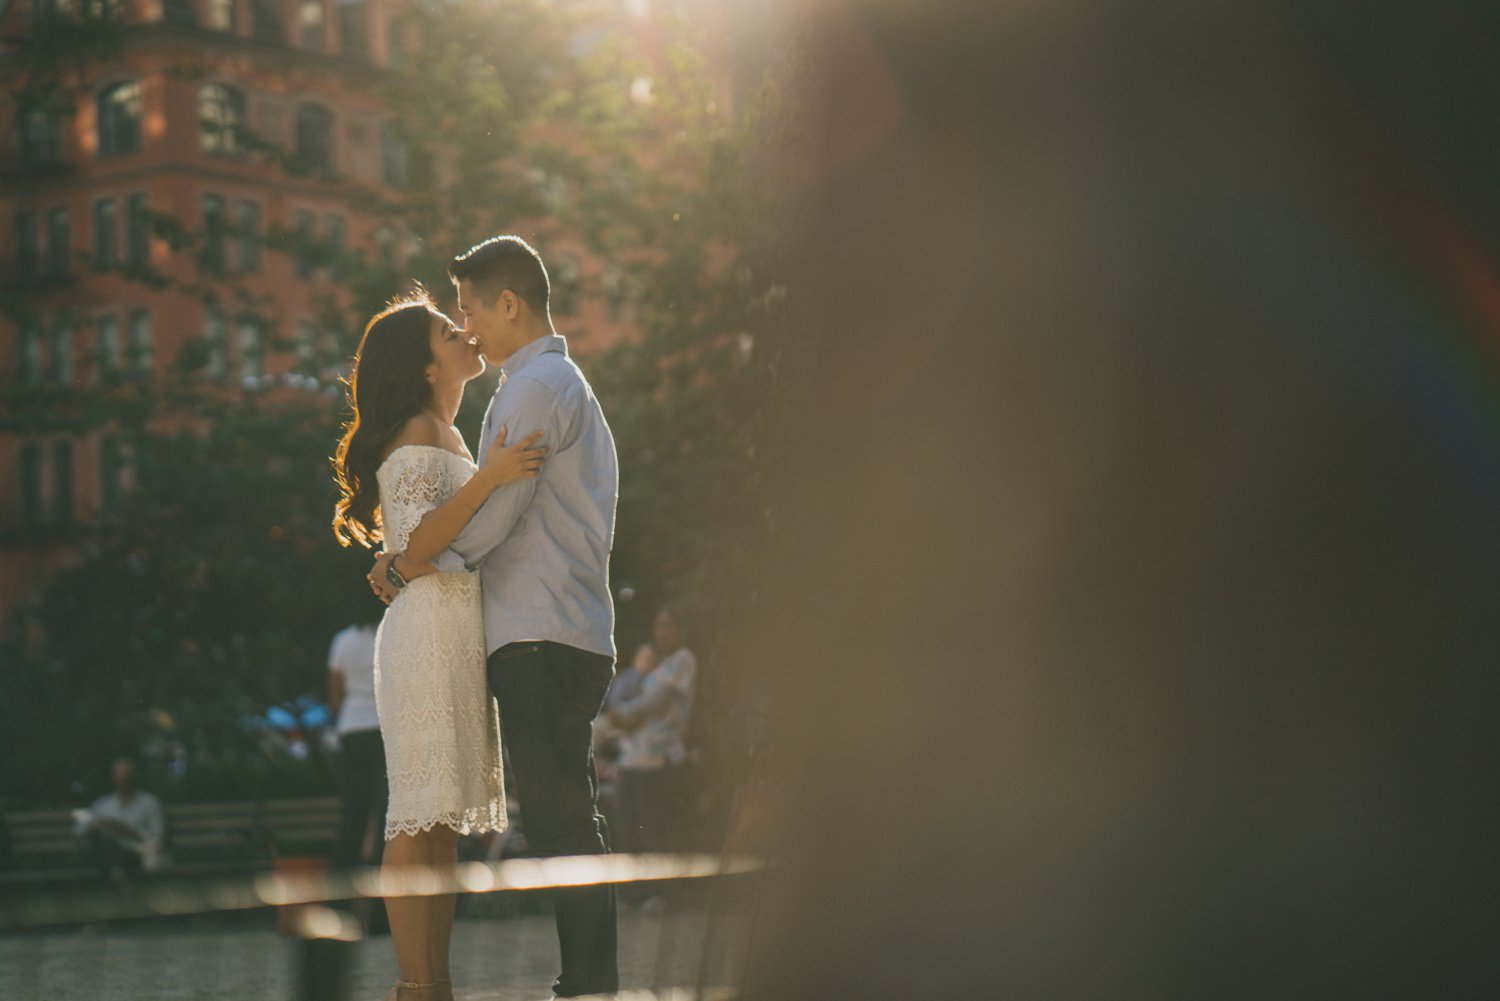 60NYC-NJ-ENGAGEMENT-PHOTOGRAPHY-BY-INTOTHESTORY-MOO-JAE.JPG